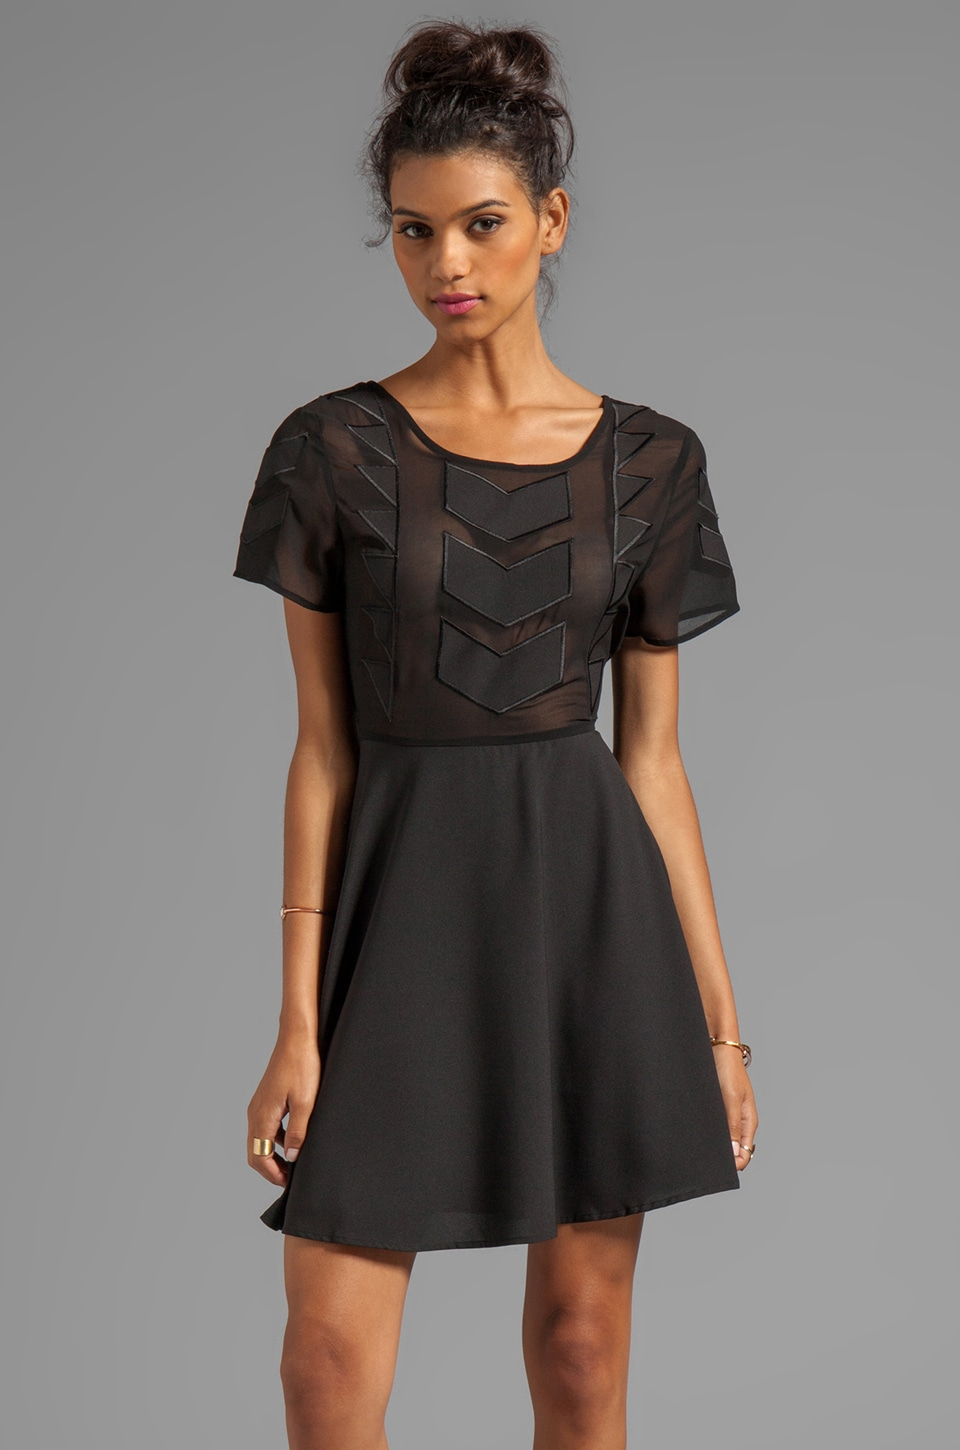 MINKPINK Zepher Dress in Black